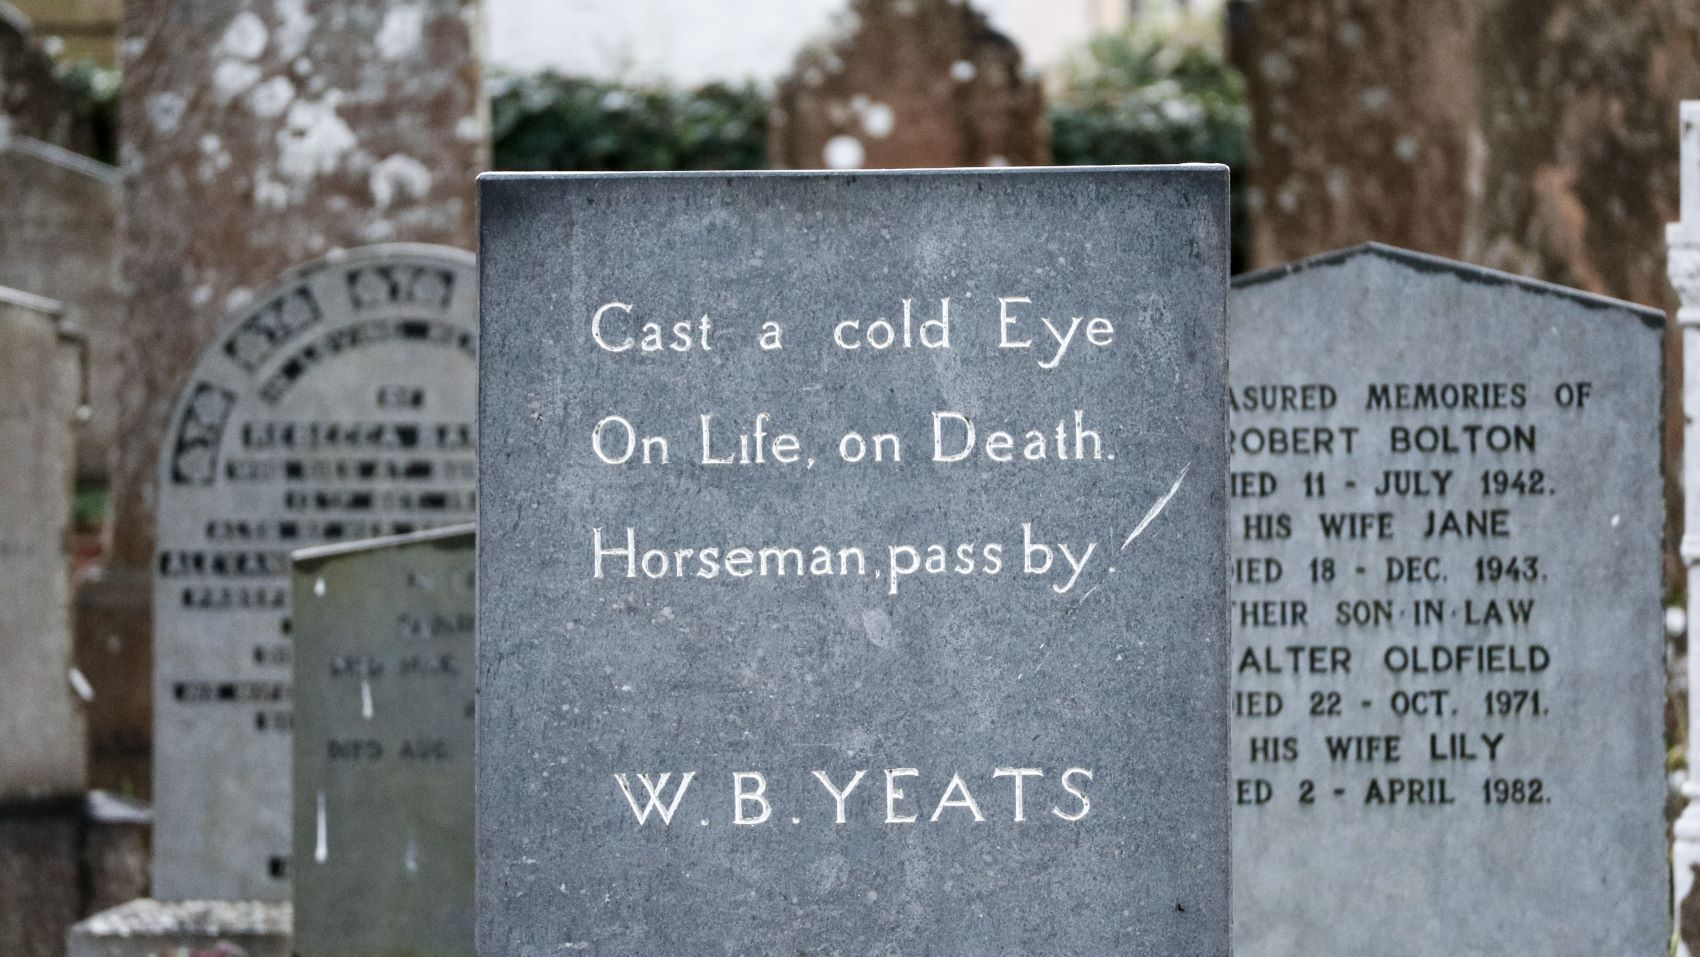 Should You Engrave a Personal Epitaph?